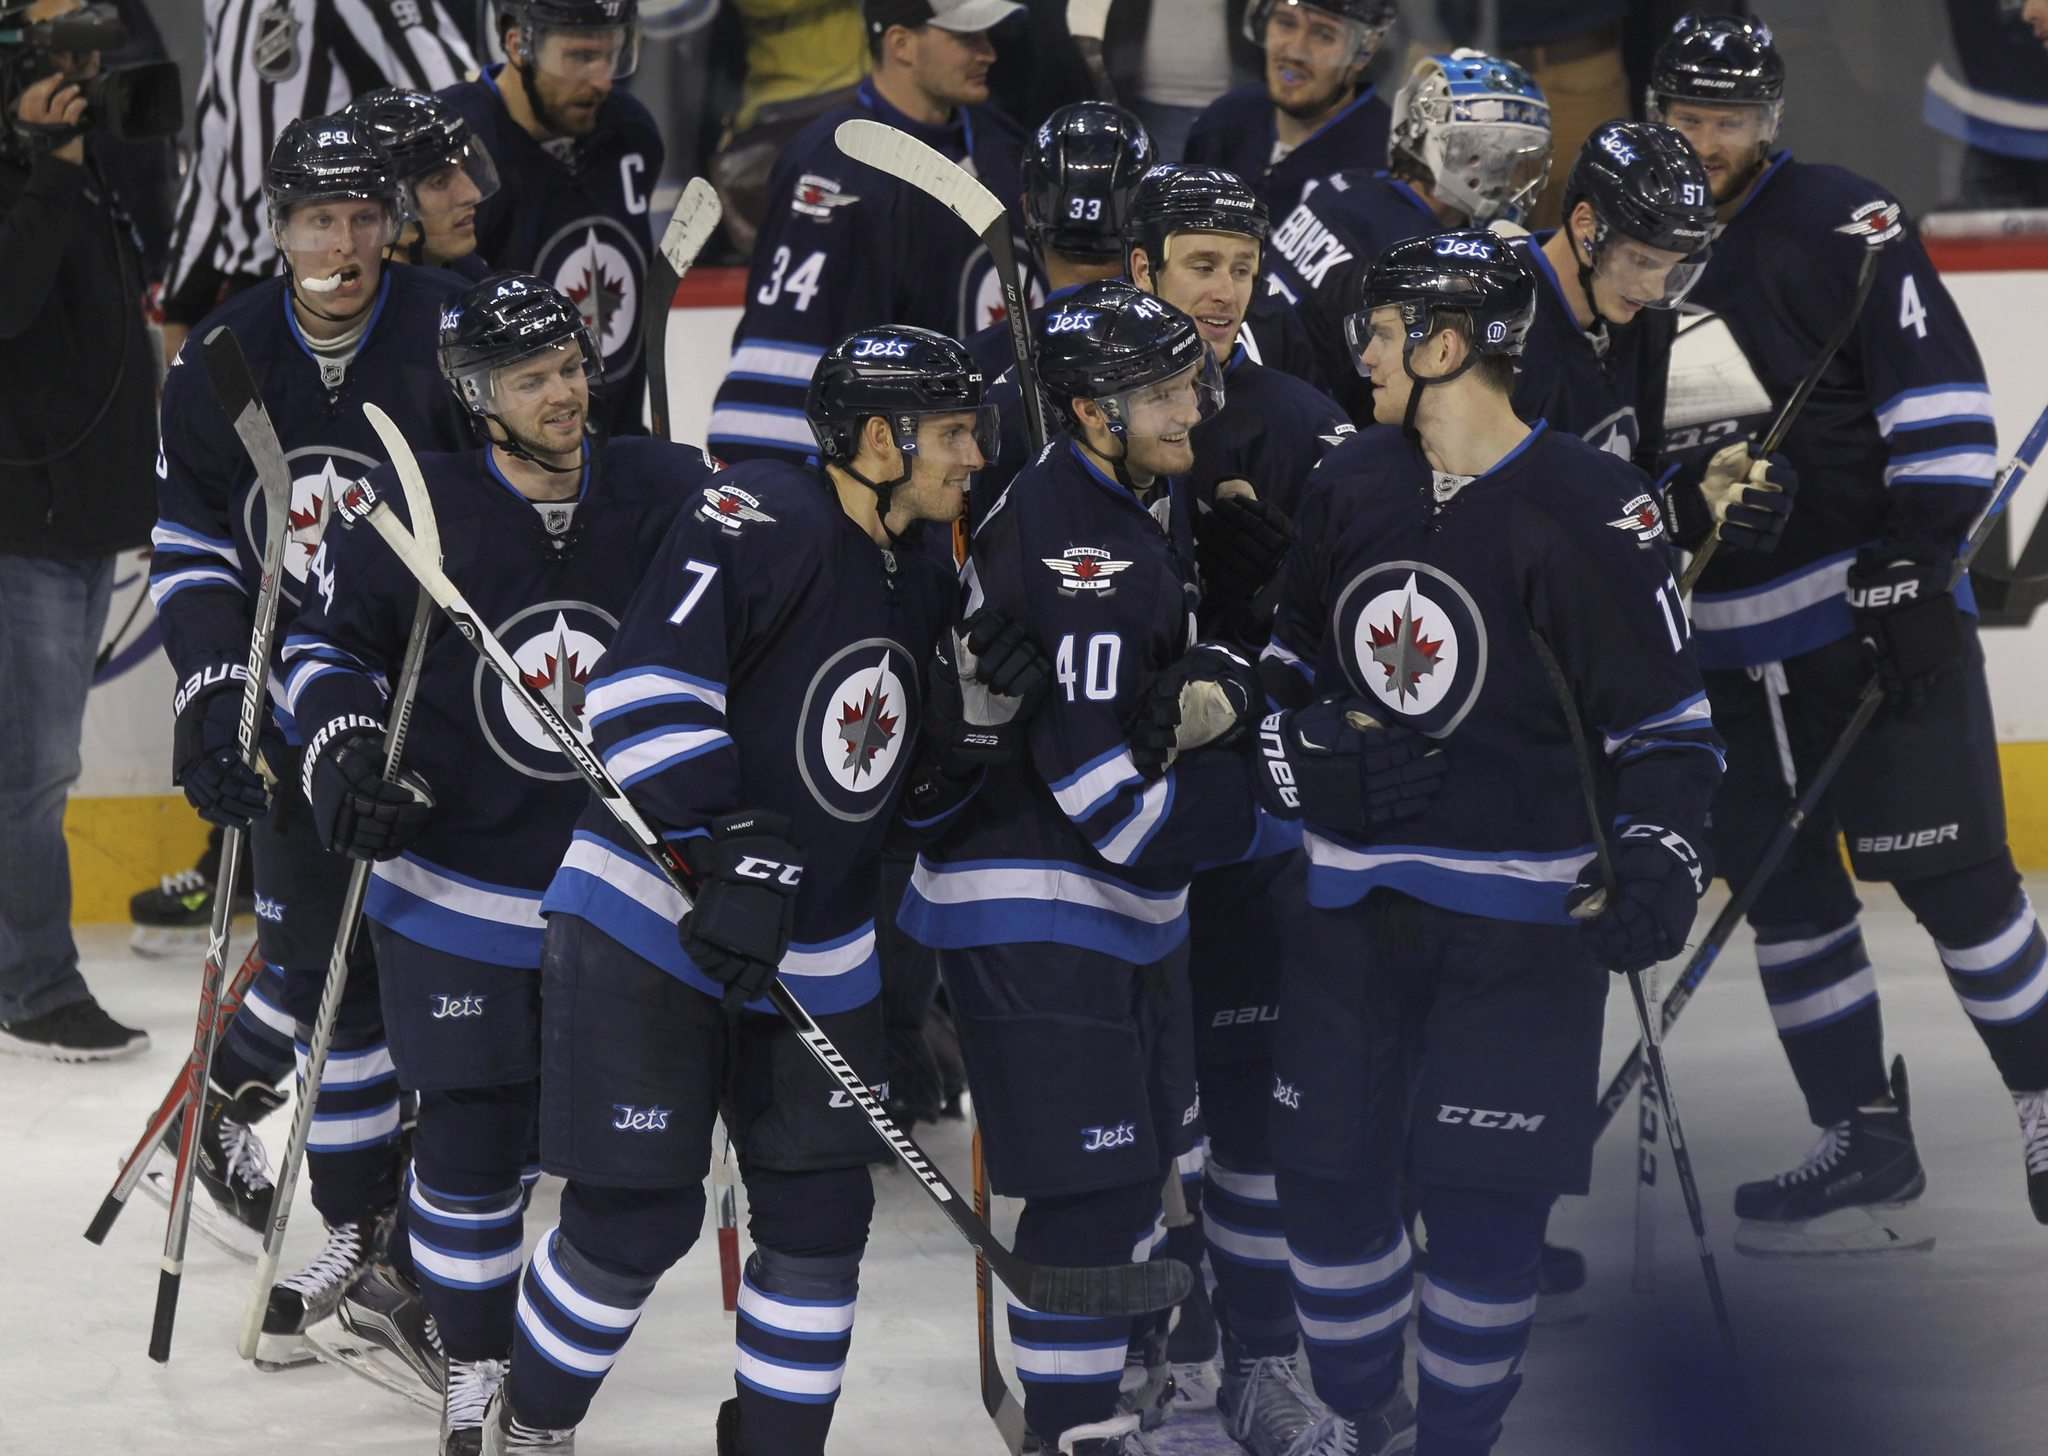 RUTH BONNEVILLE / WINNIPEG FREE PRESS</p><p>The Winnipeg Jets celebrate winning their game against the Carolina Hurricanes' 5-4 in overtime at MTS Centre.</p>